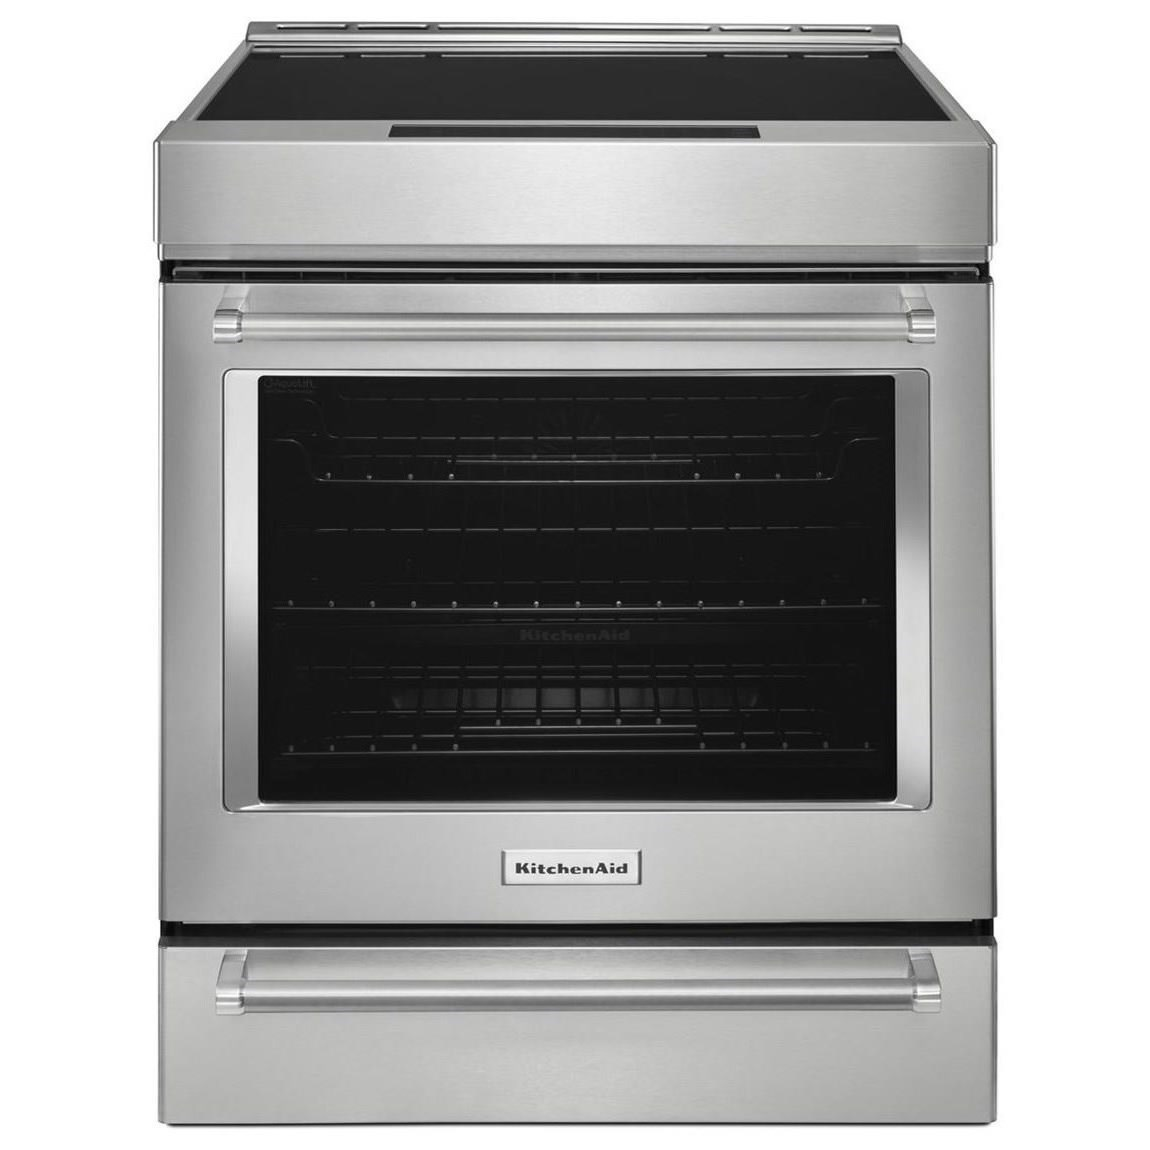 Superbe KitchenAid KitchenAid Electric Ranges 30 Inch 4 Element Induction  Convection Range   Item Number